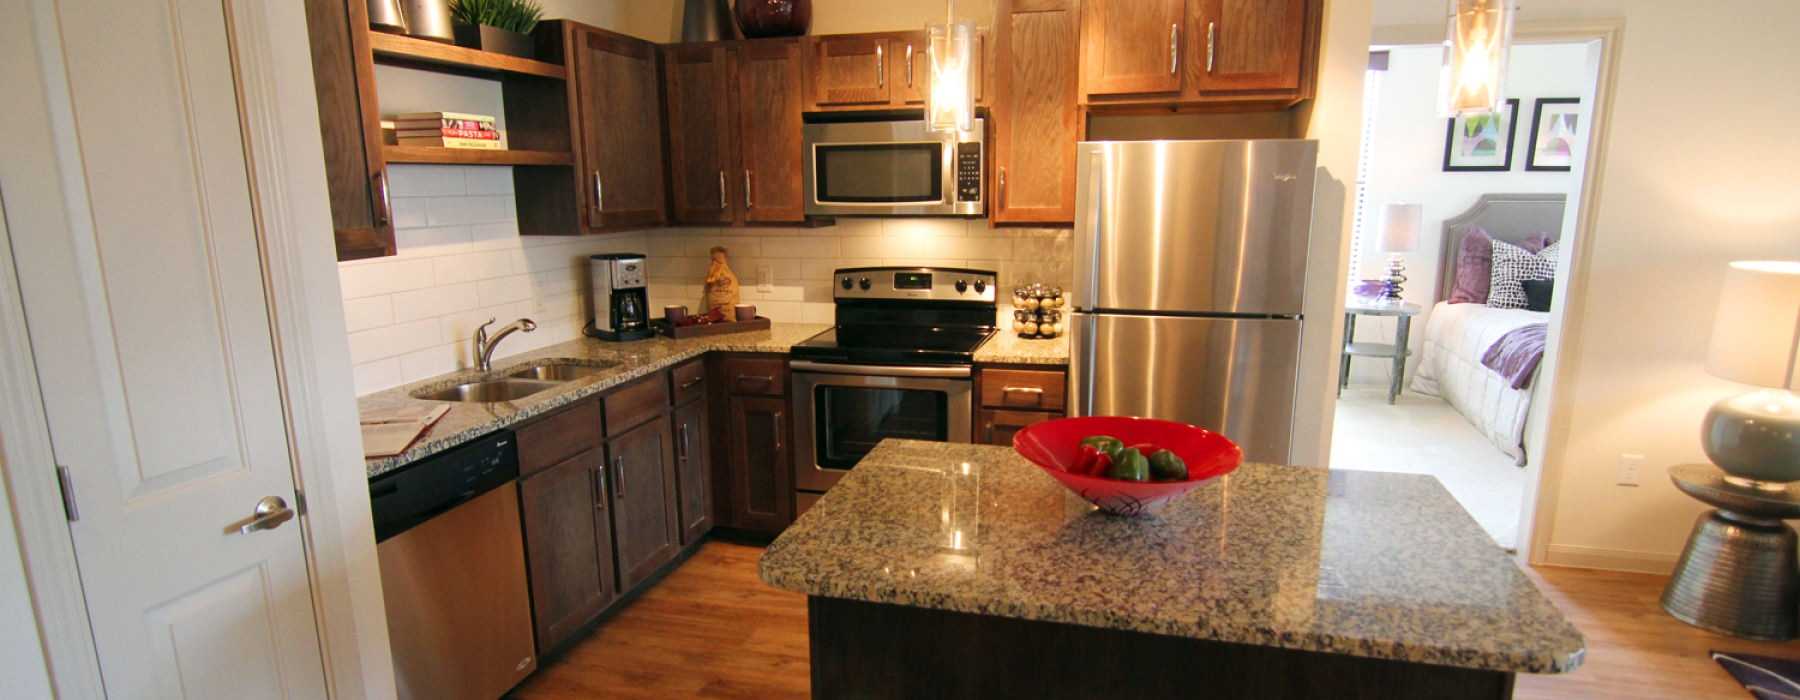 spacious, open kitchen with island counter